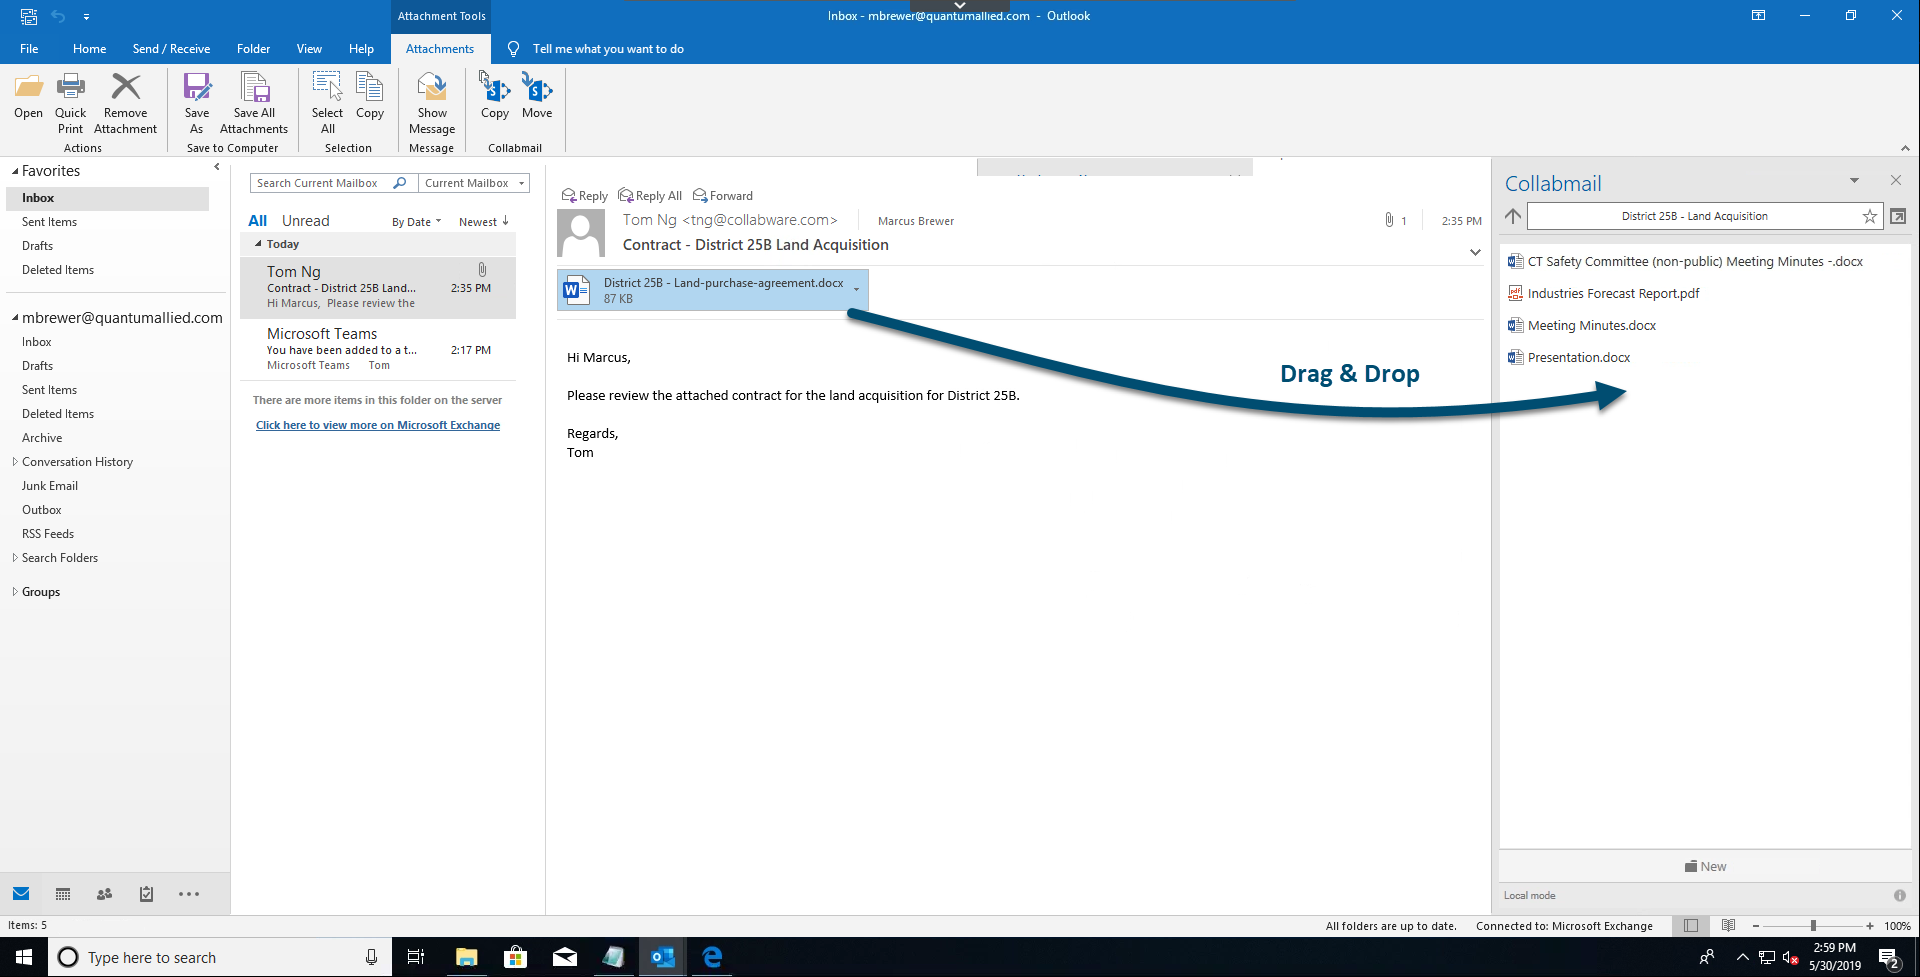 Bridging the Gap Between Microsoft Teams, SharePoint & Outlook